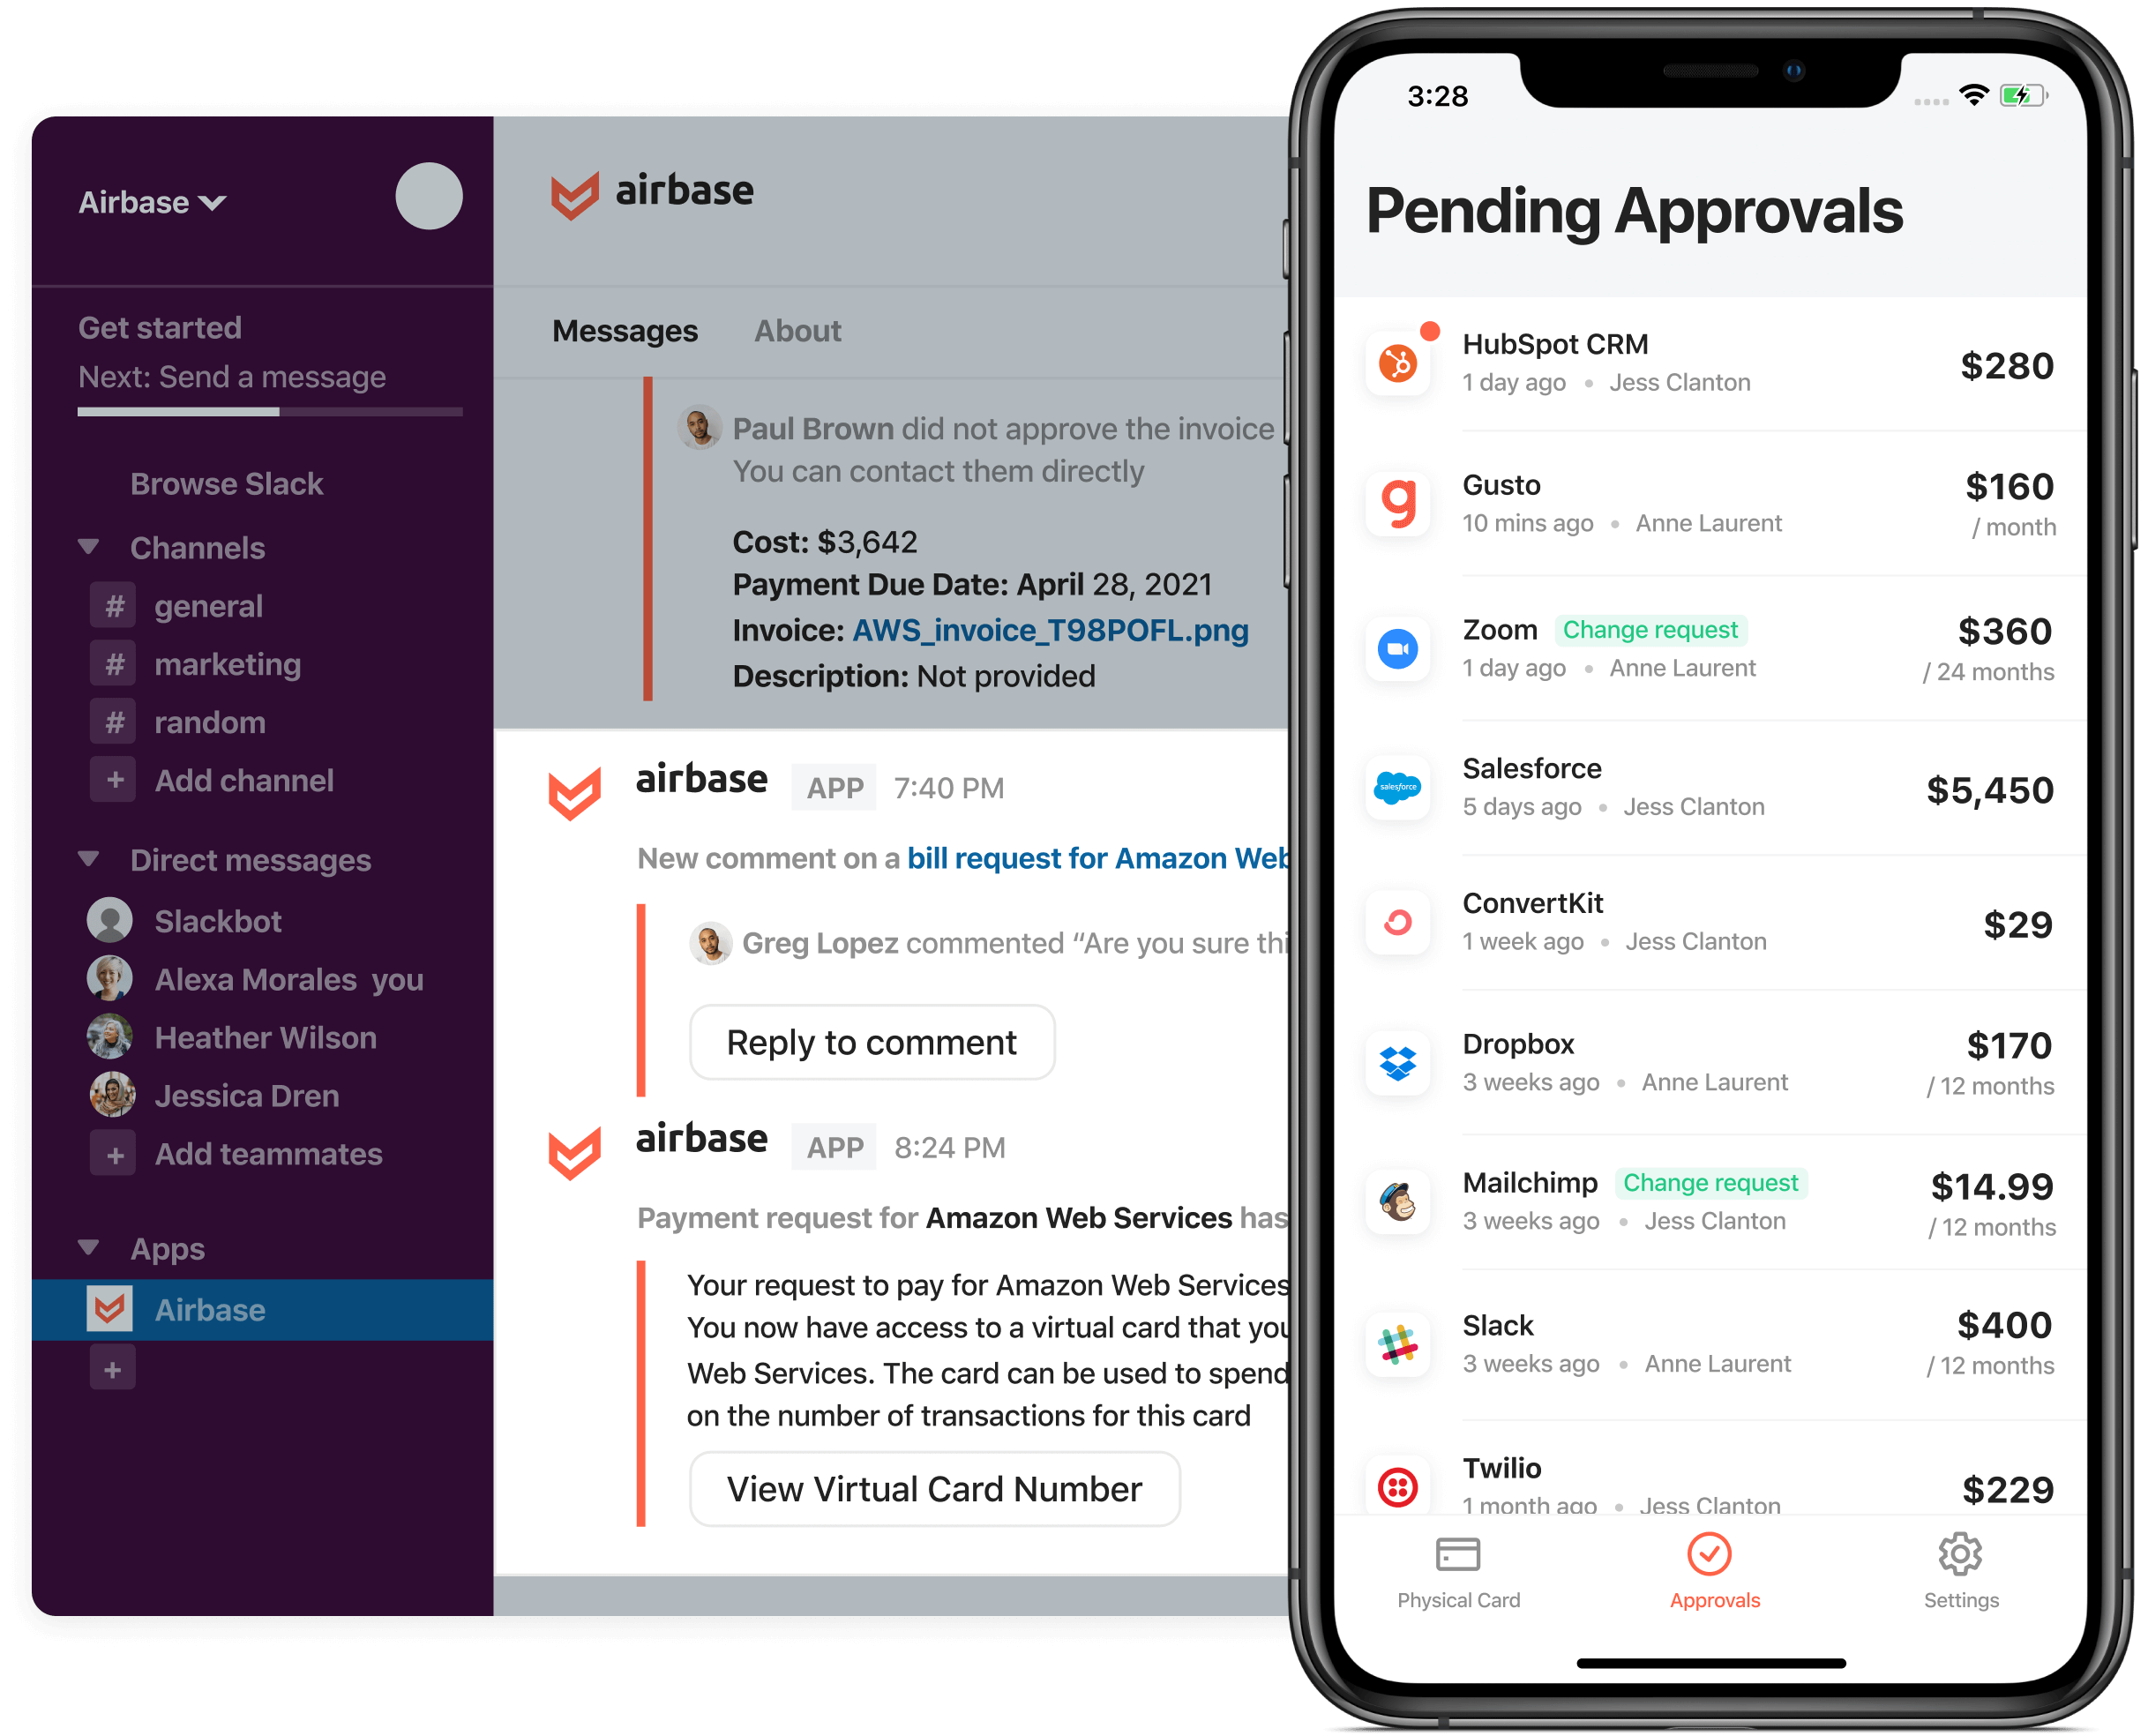 Product screenshot showing pending approvals and integrating into Slack.